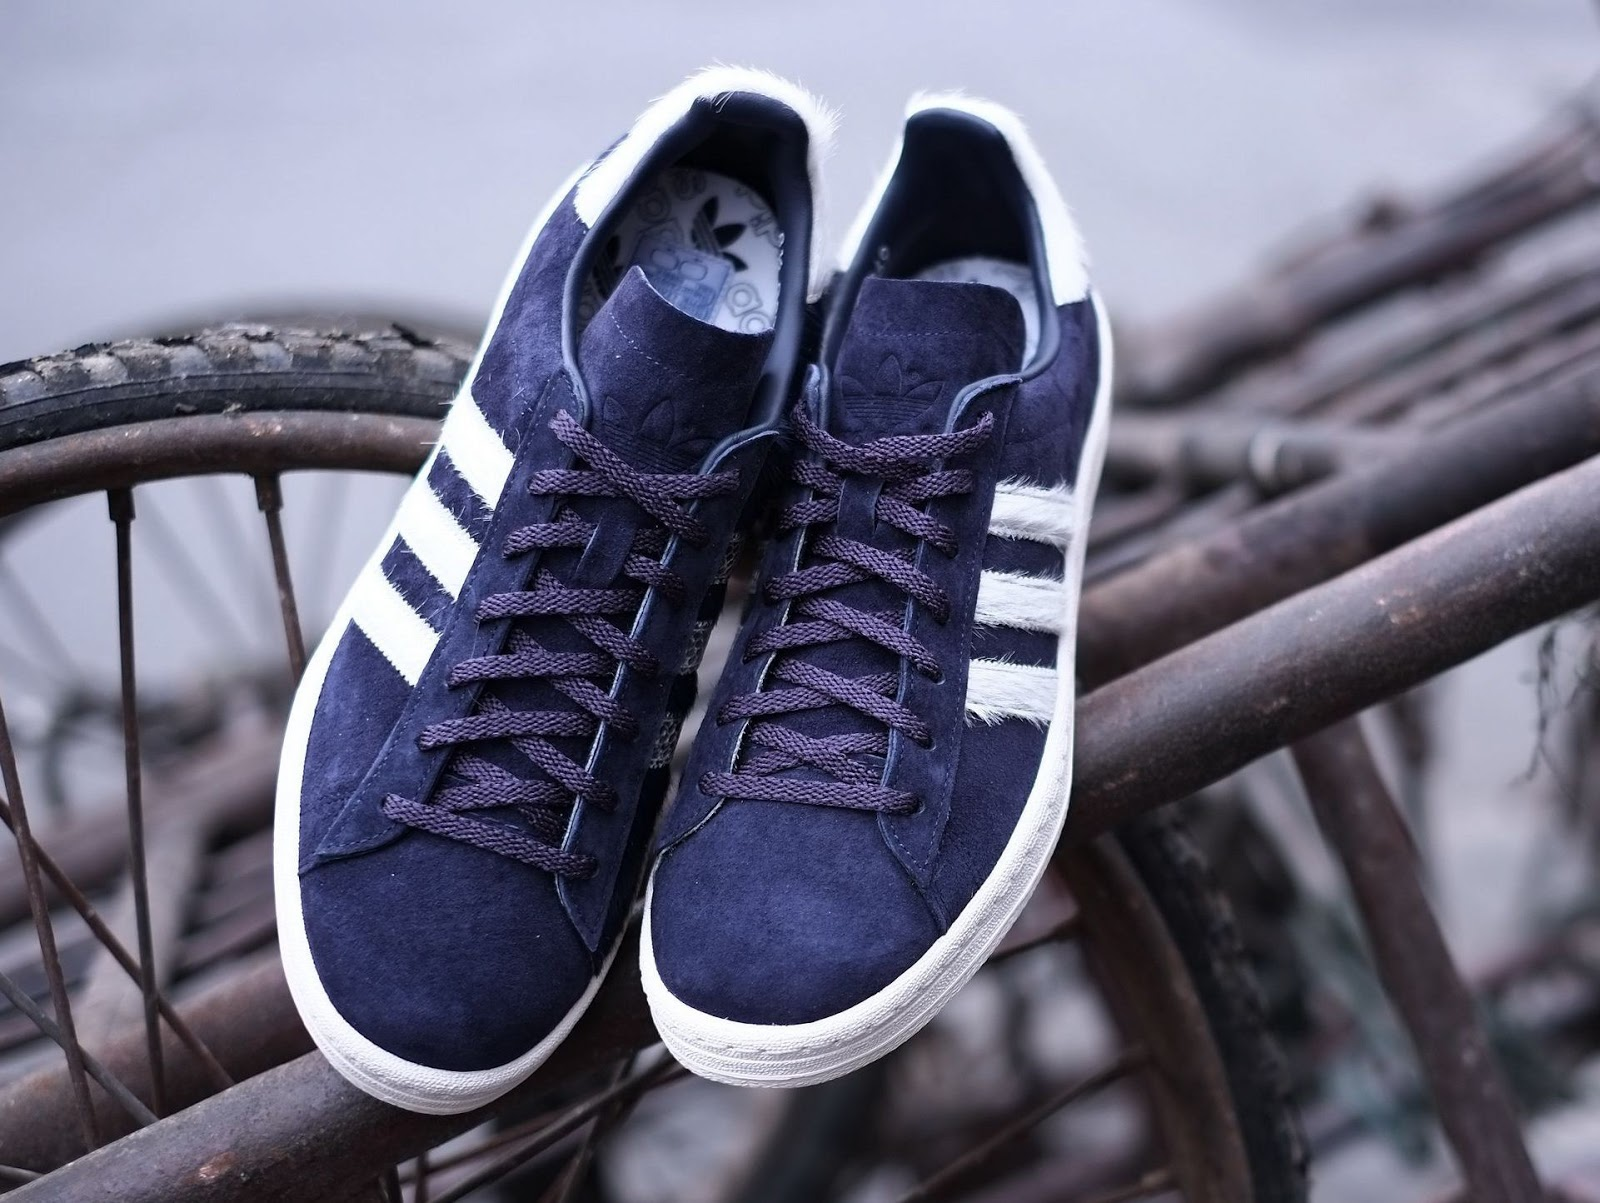 huge selection of 3a8b6 84423 Adidas x ZOZOTOWN Campus 80s ZOZO